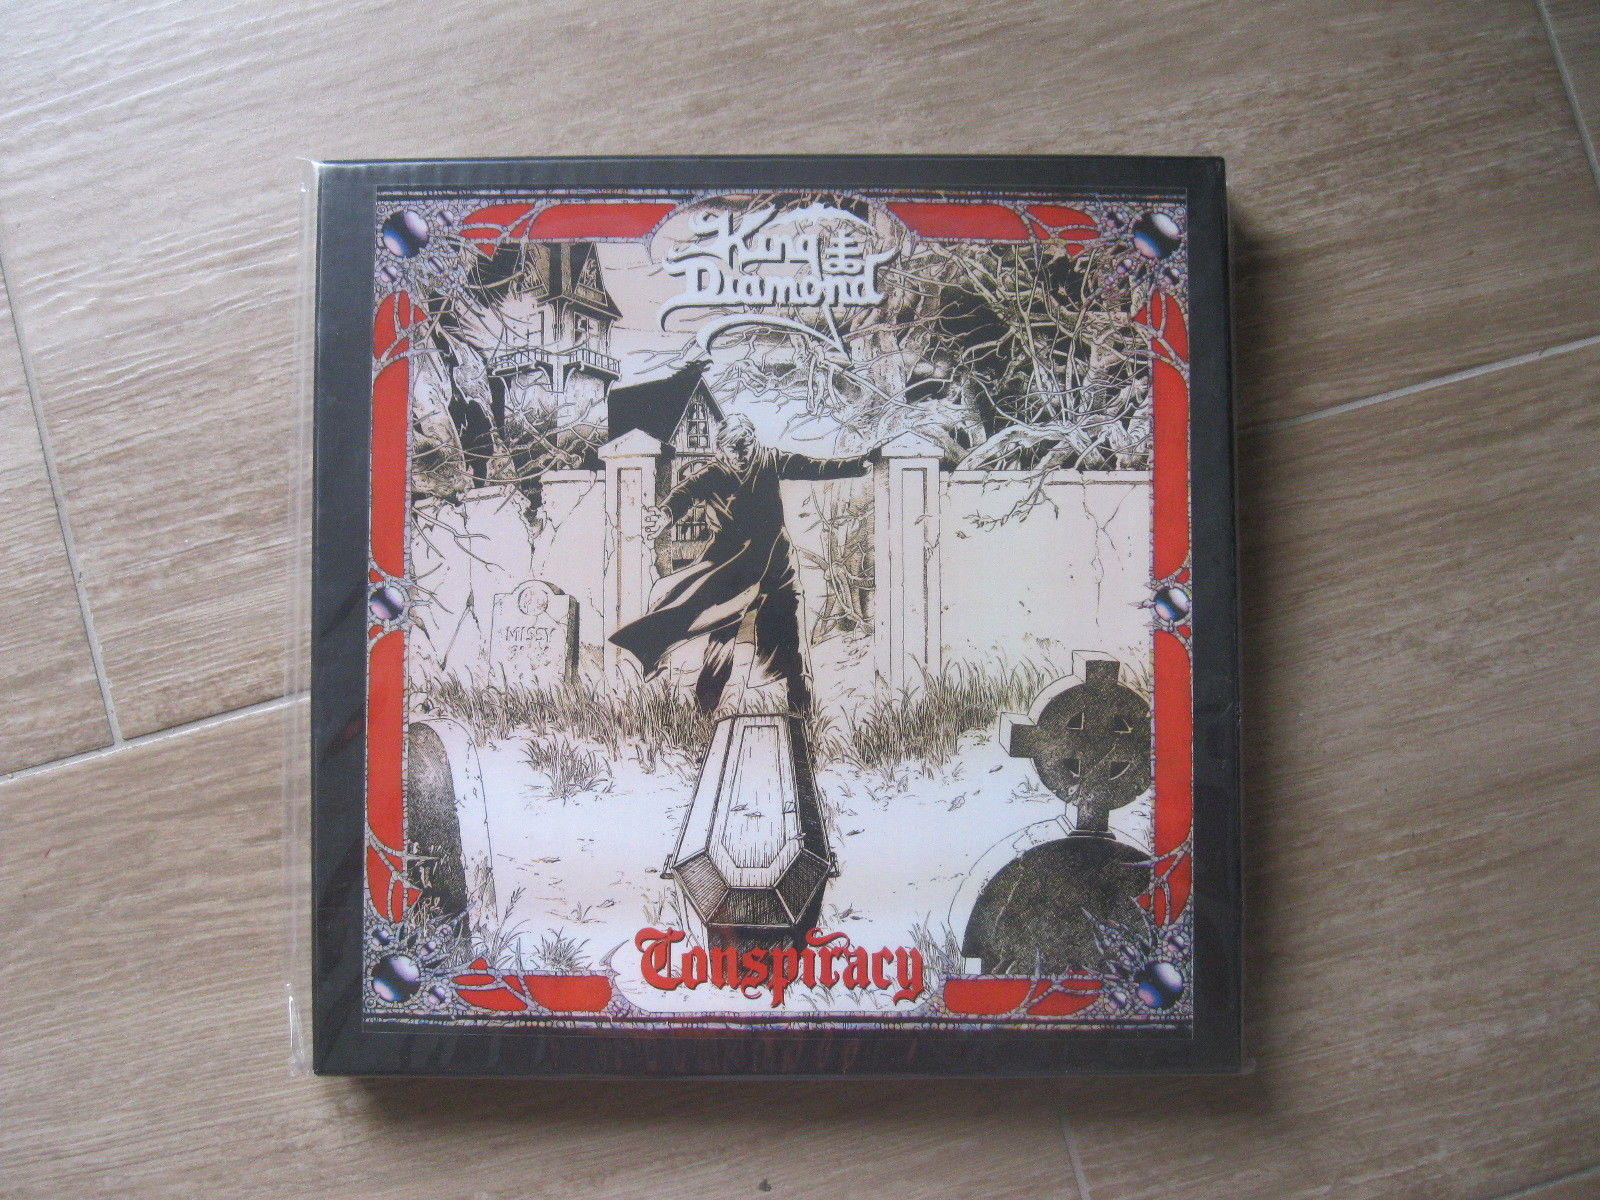 Popsike Com King Diamond Conspiracy Graveyard Box Set Ltd 50